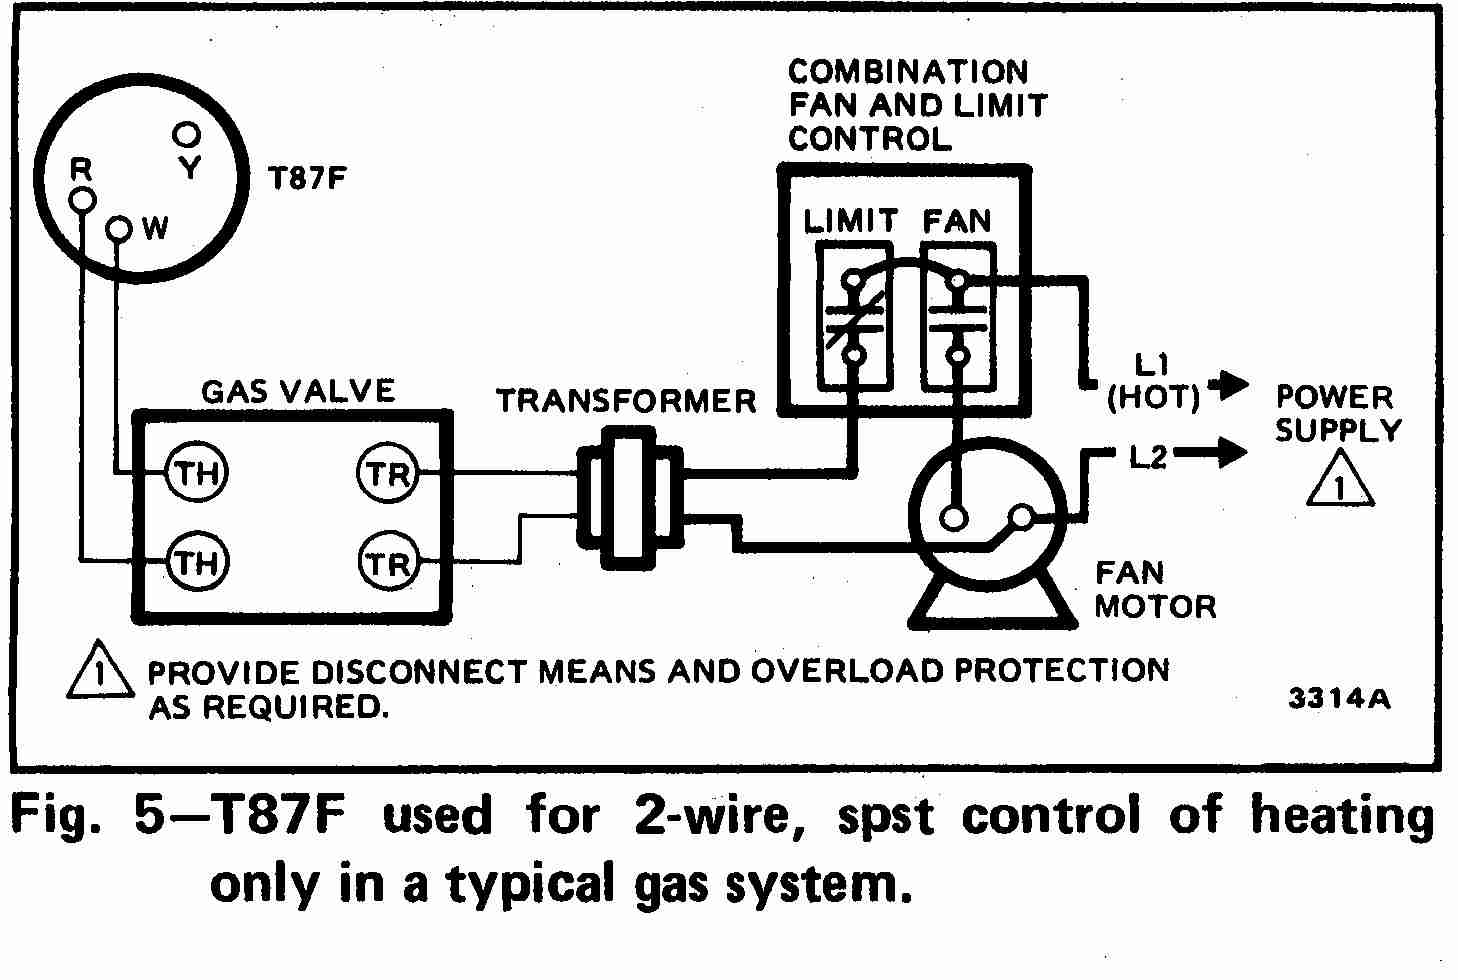 TT_T87F_0002_2Wg_DJF room thermostat wiring diagrams for hvac systems honeywell heating controls wiring diagrams at bayanpartner.co